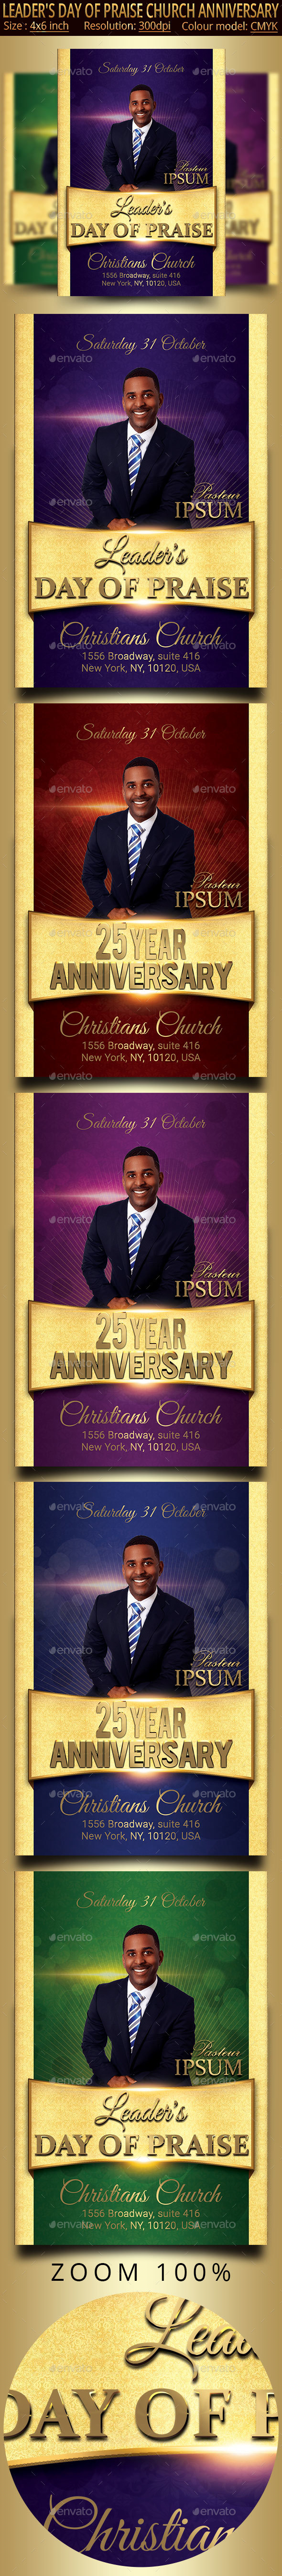 Church Anniversary And Leader's Day Of Praise Flyer - Church Flyers